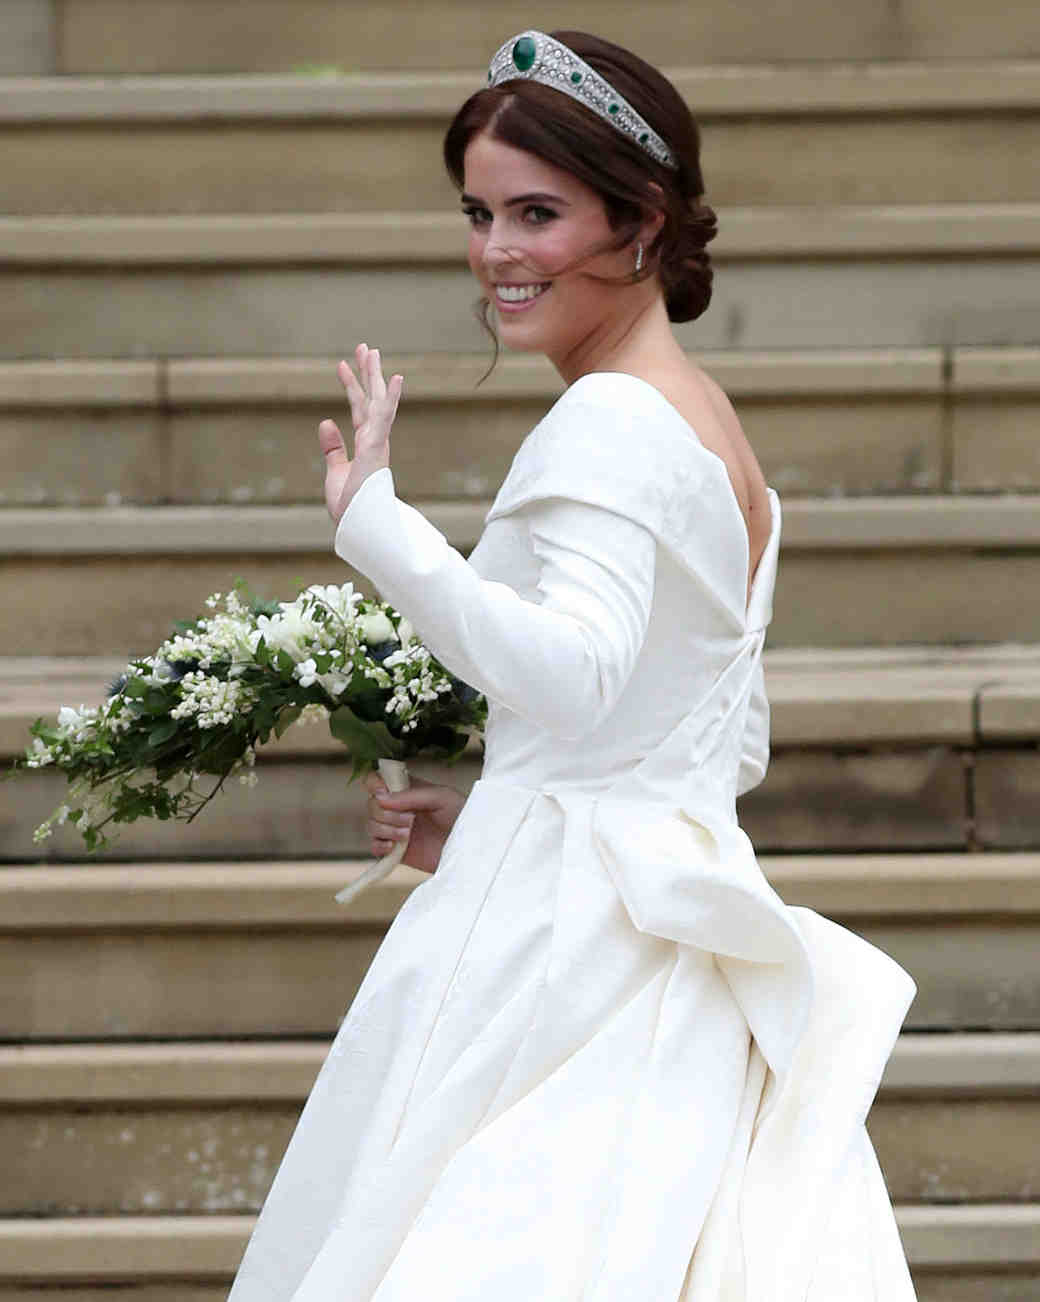 b0f7abcc59 The 17 Best Royal Wedding Dresses of All Time